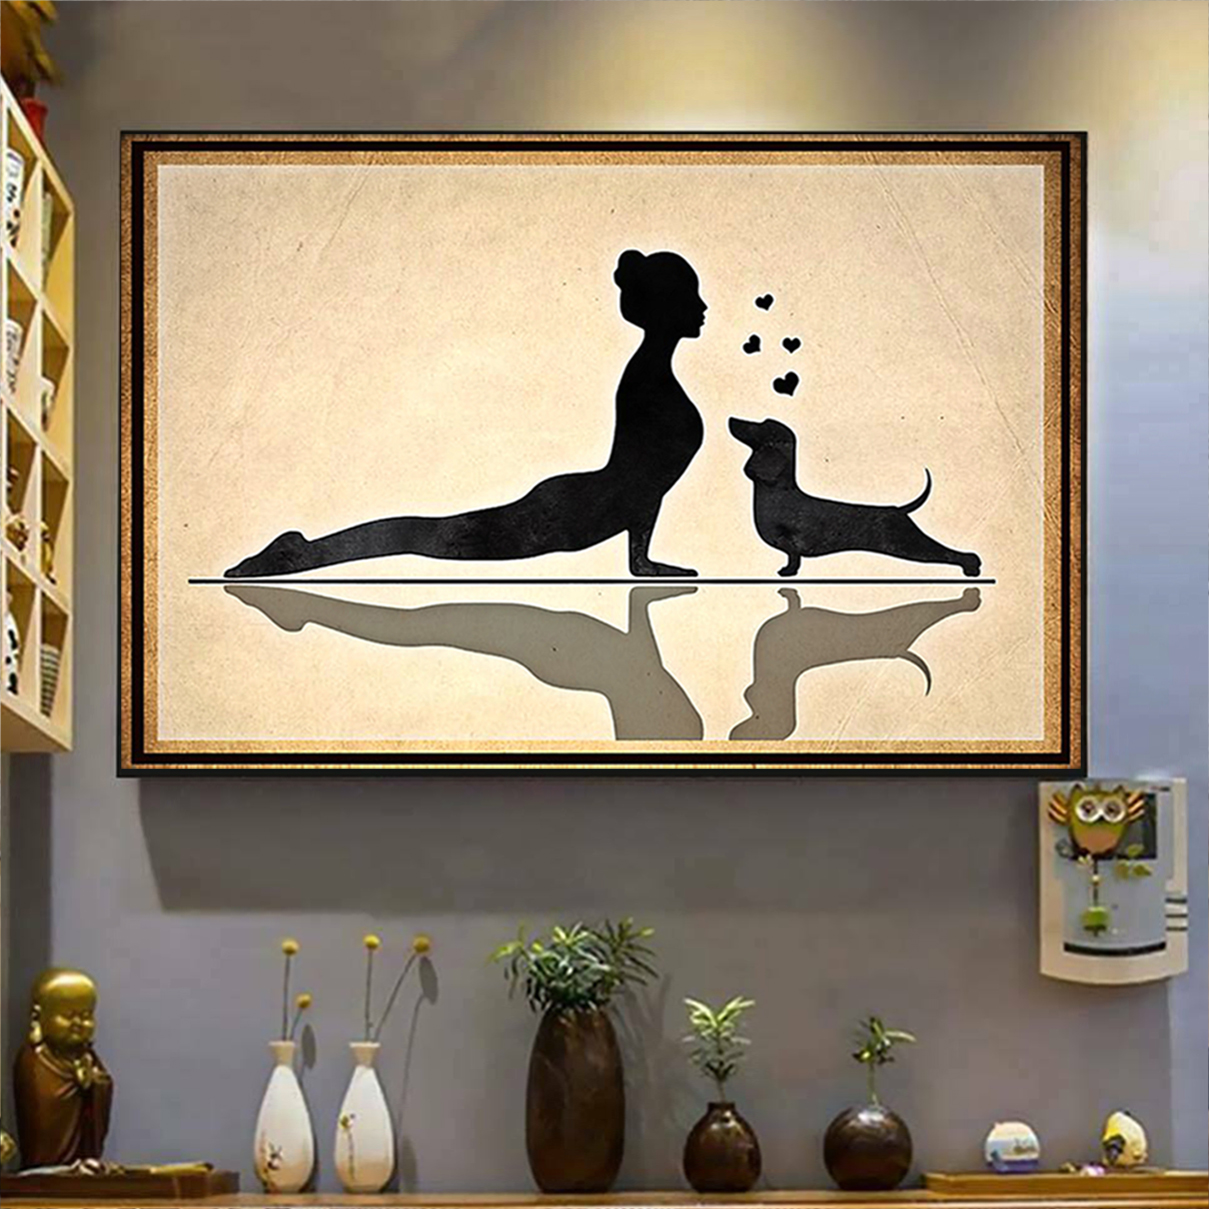 Dachshund and yoga poster A2